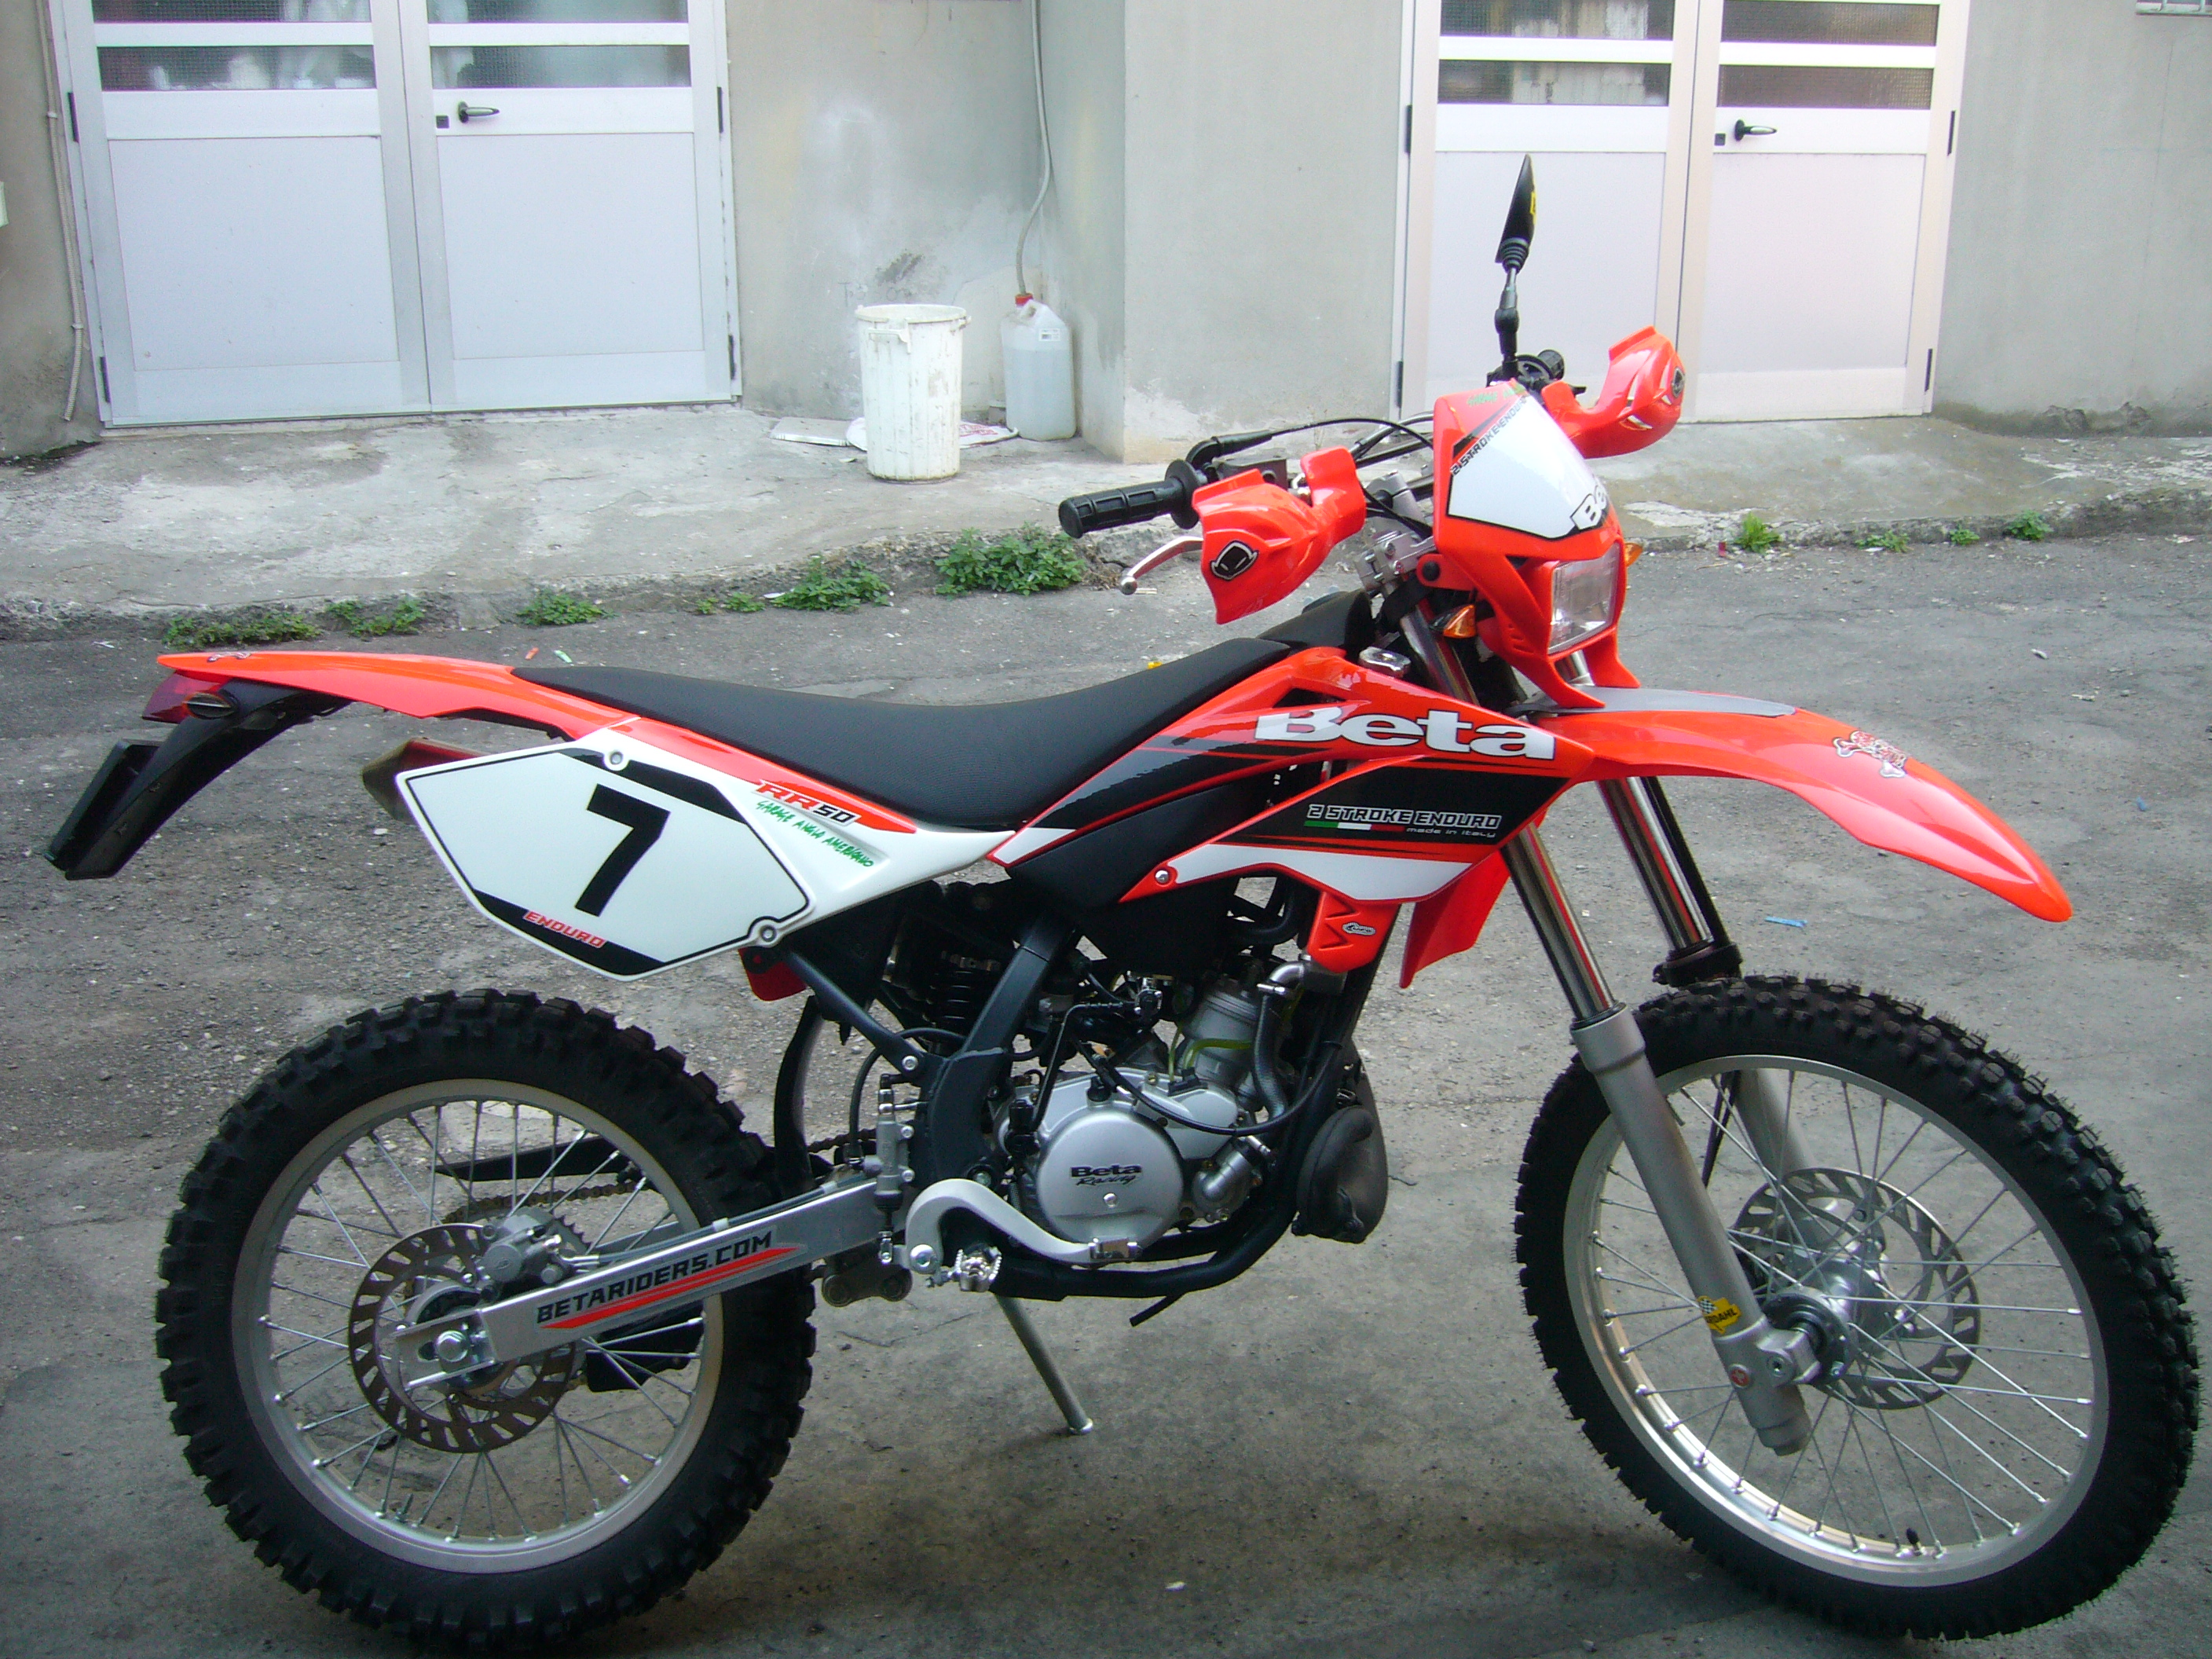 Beta RR 50 Super Motard 2002 images #64180